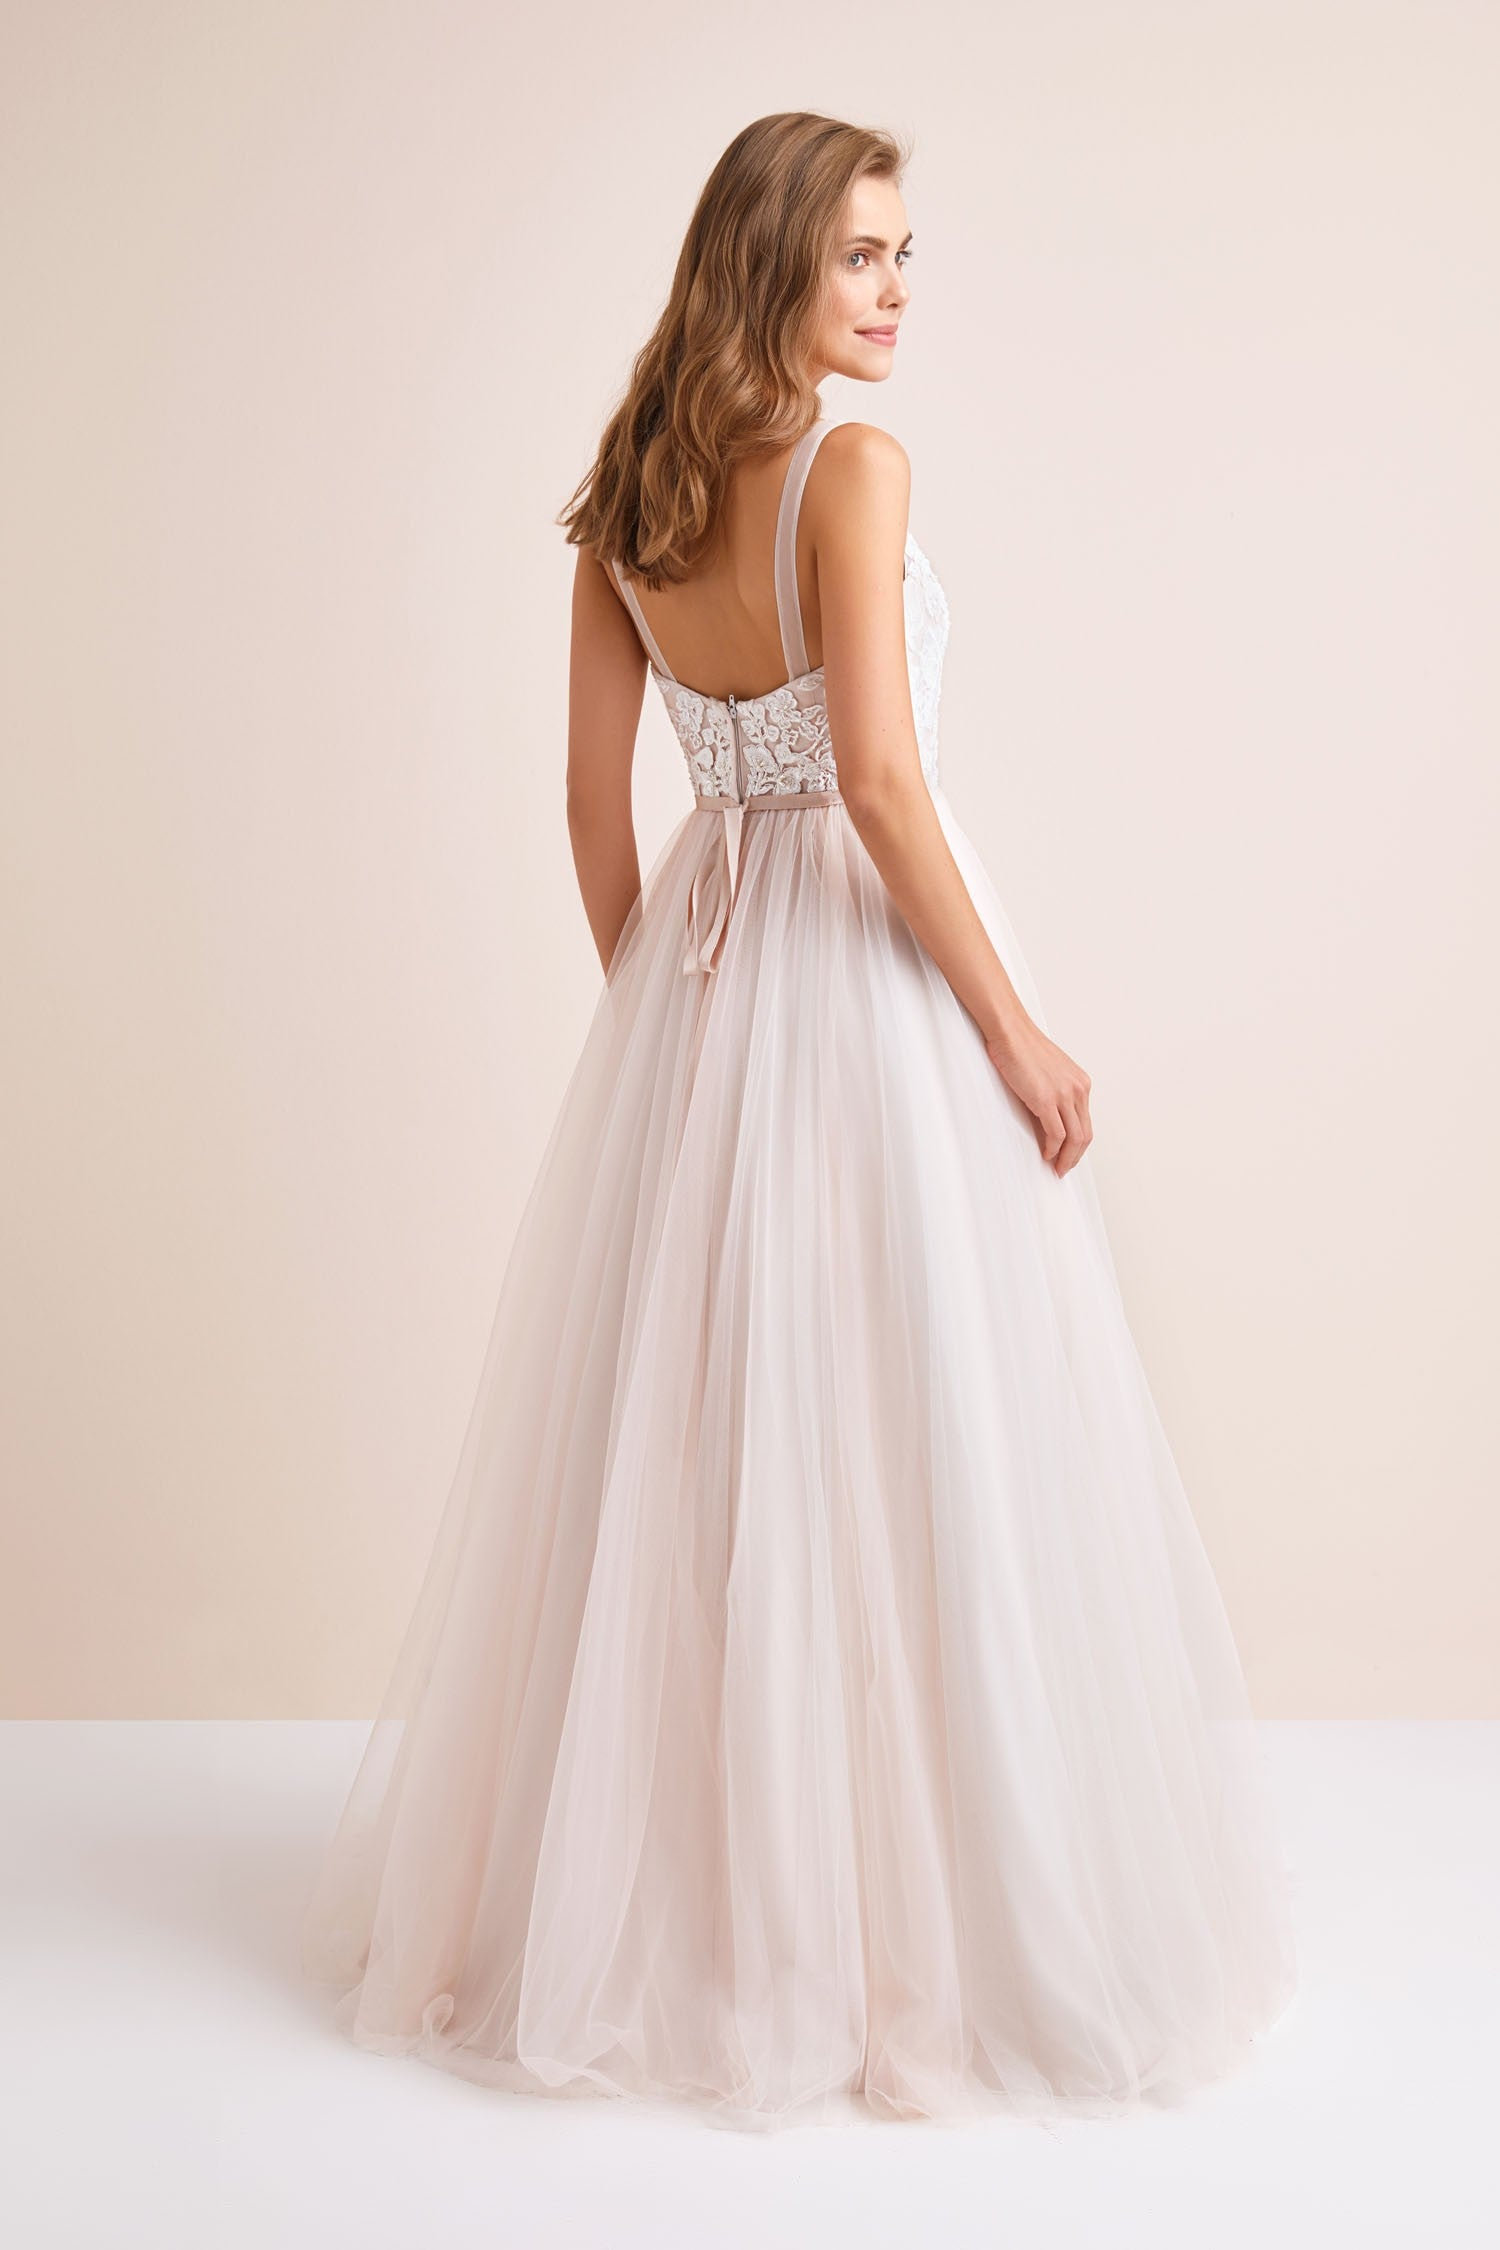 Lace and Tulle Ball Gown Wedding Dress with Ribbon